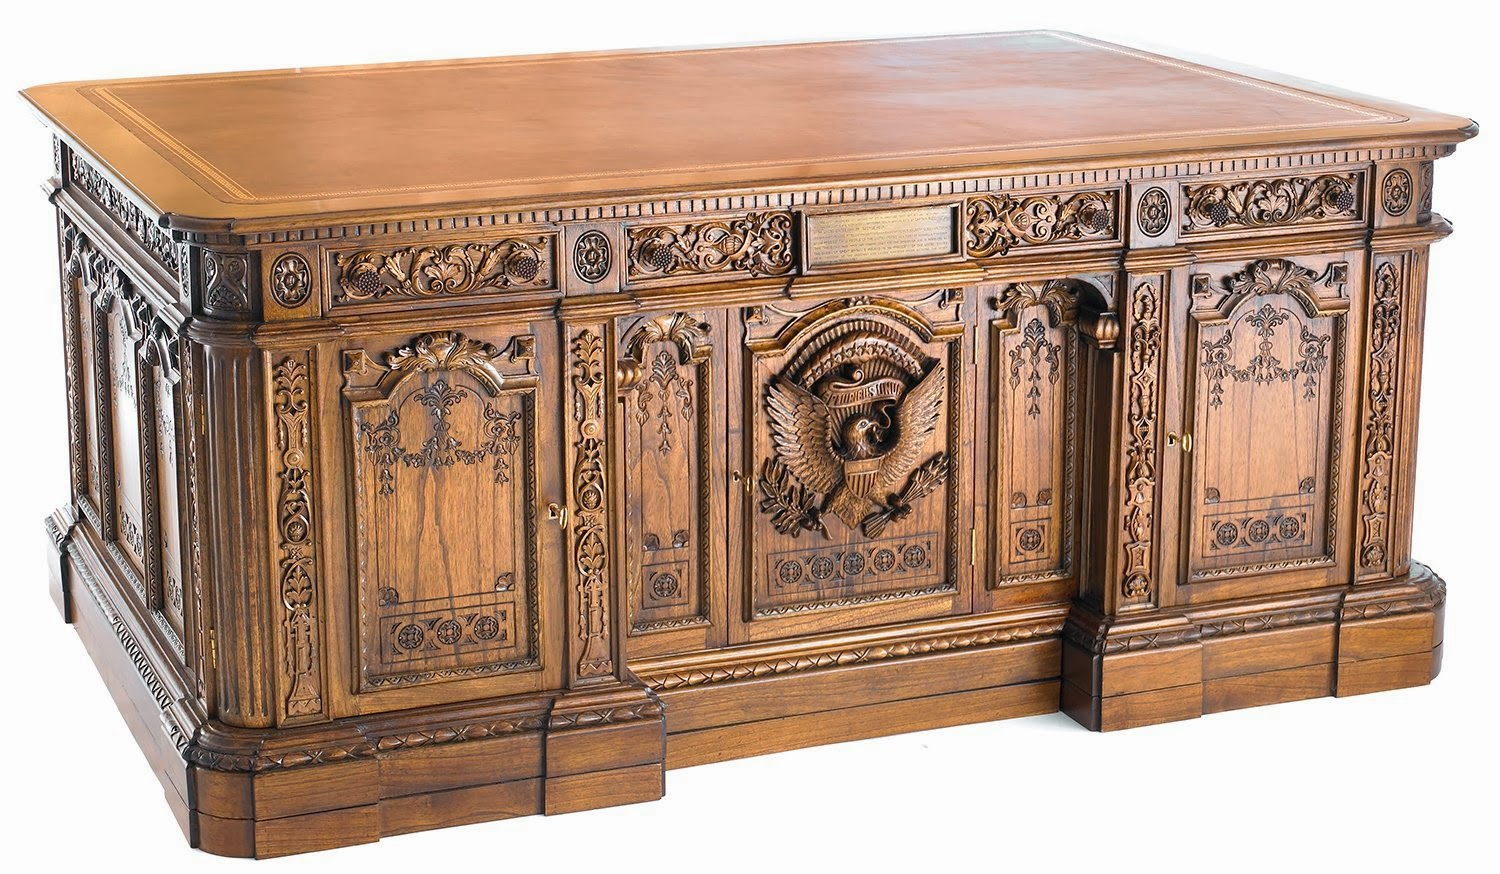 The Resolute Desk Resolute Desk Secret Compartment. Artemide Desk Lamp. Rustic Wood Kitchen Table. Replacing Kitchen Drawers. Go Army Help Desk. Cash Drawer Insert Tray. White Roll Top Desk. Rustic Buffet Table. Vastu Tips For Office Desk